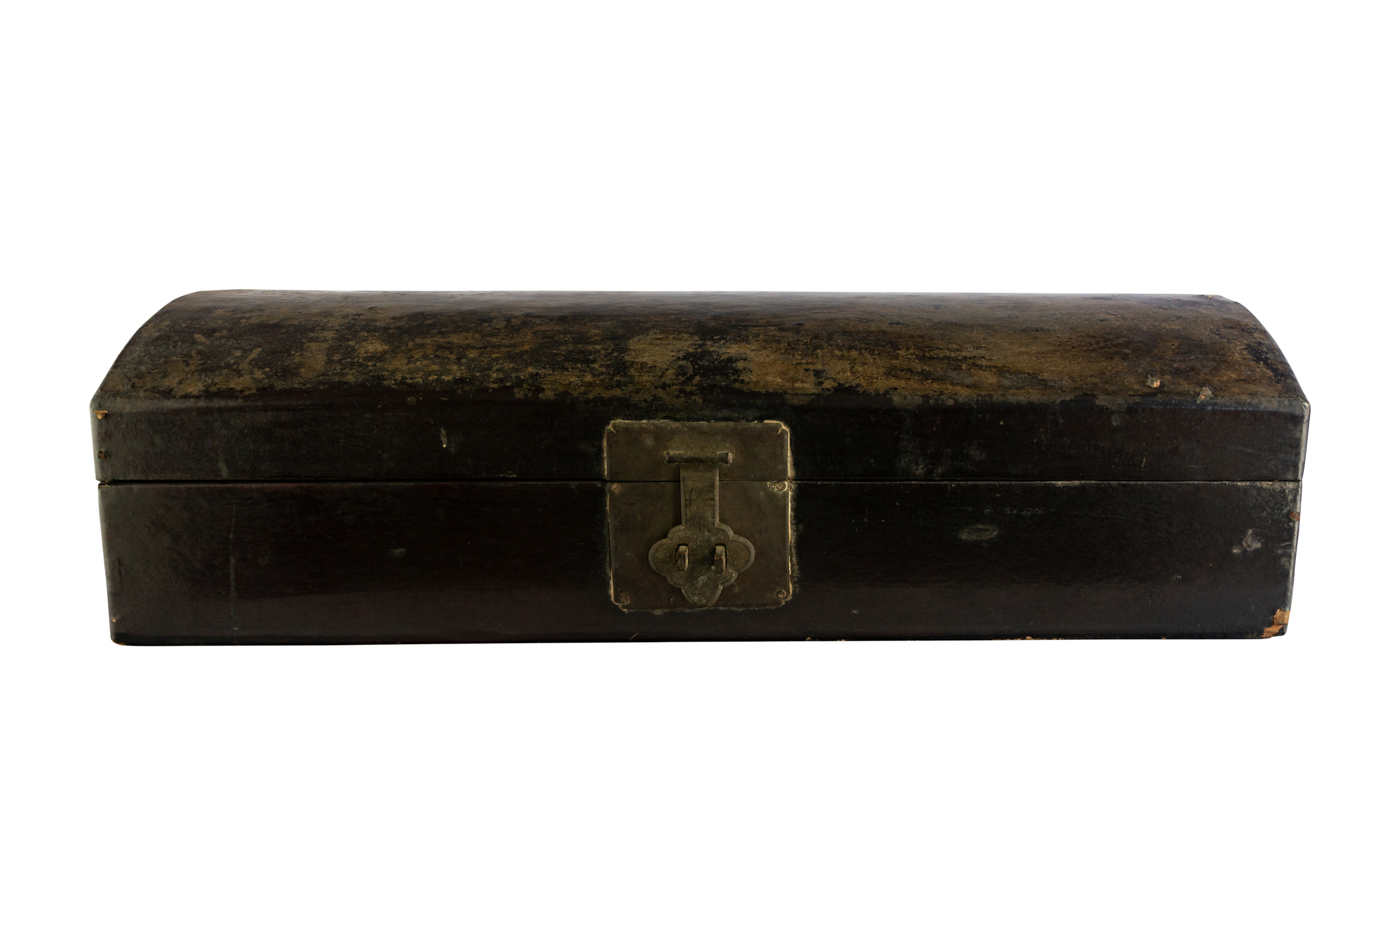 Rectangular wooden trunk